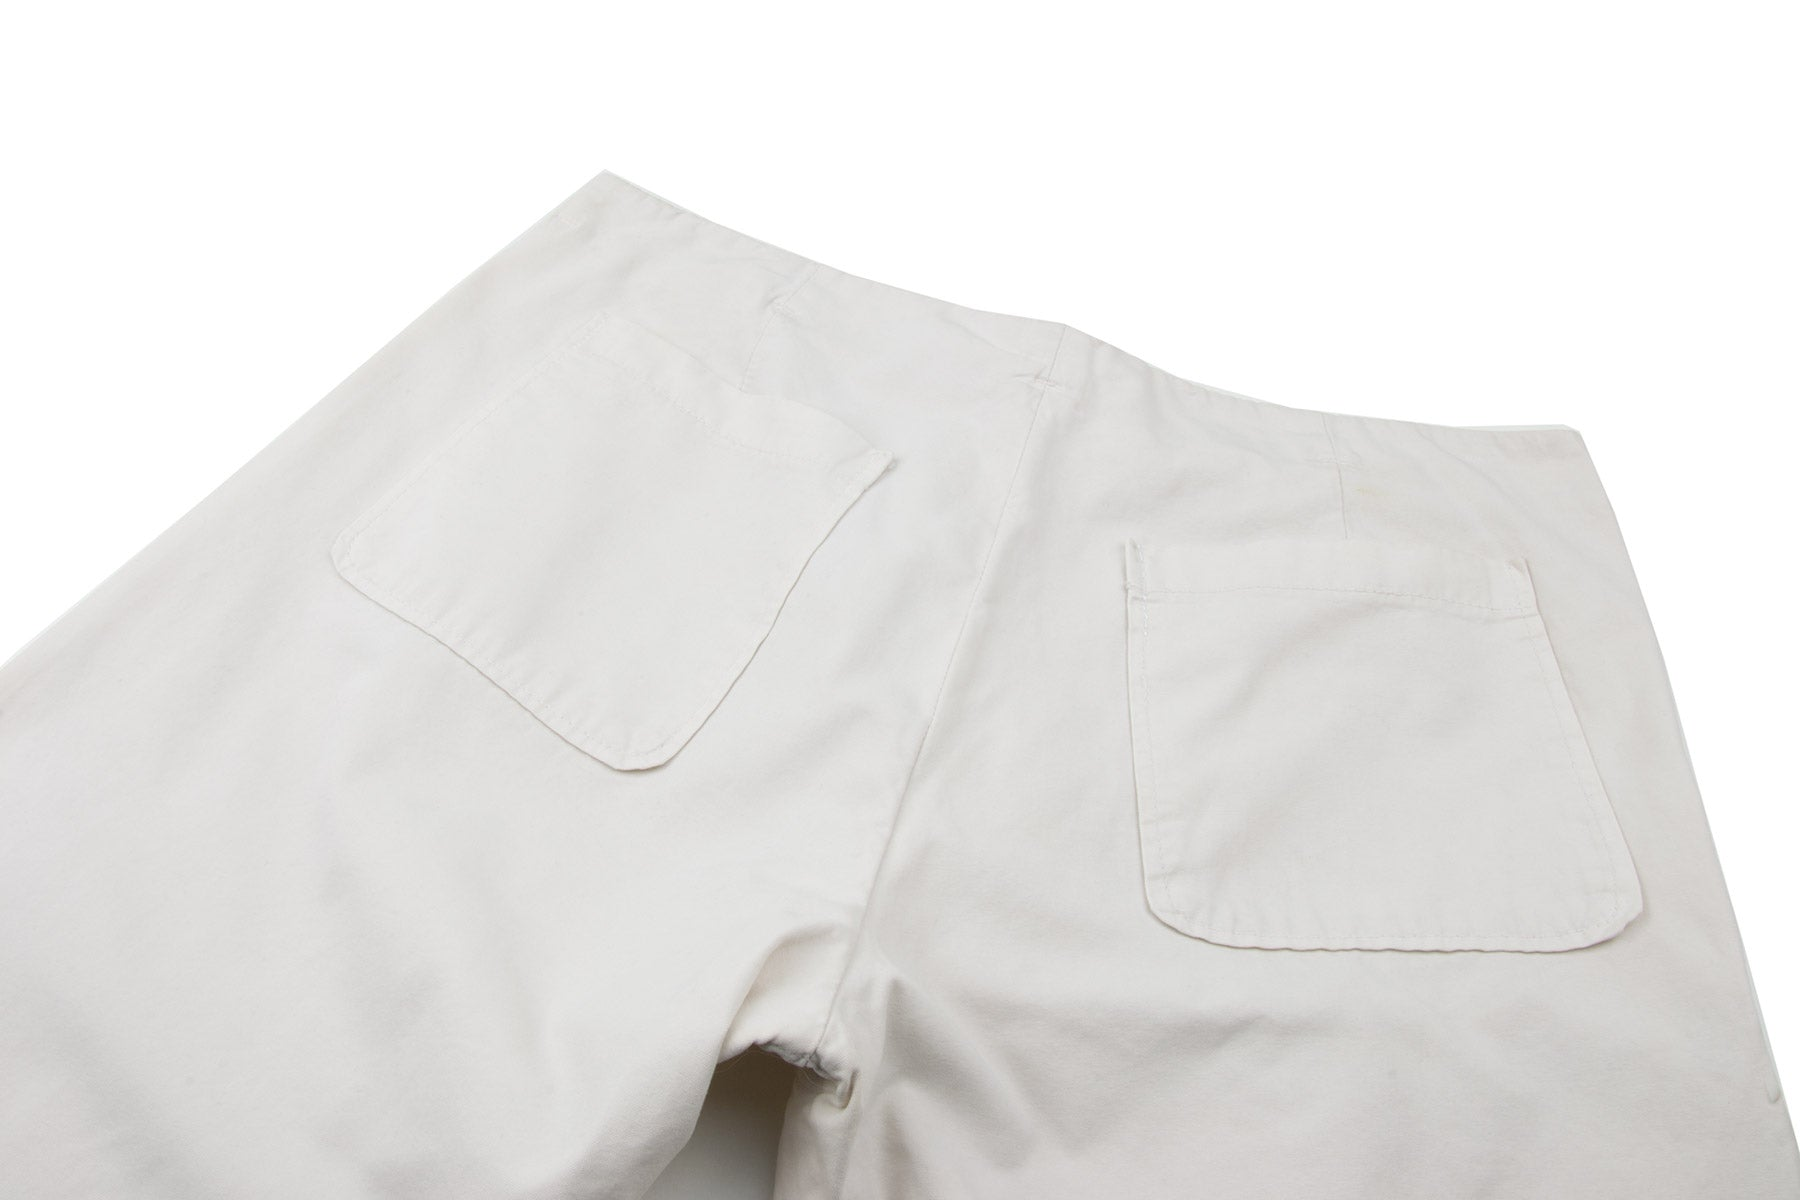 2006 S/S MCQUEEN ANATOMICAL PANTS IN COTTON WITH SILESIA POCKET